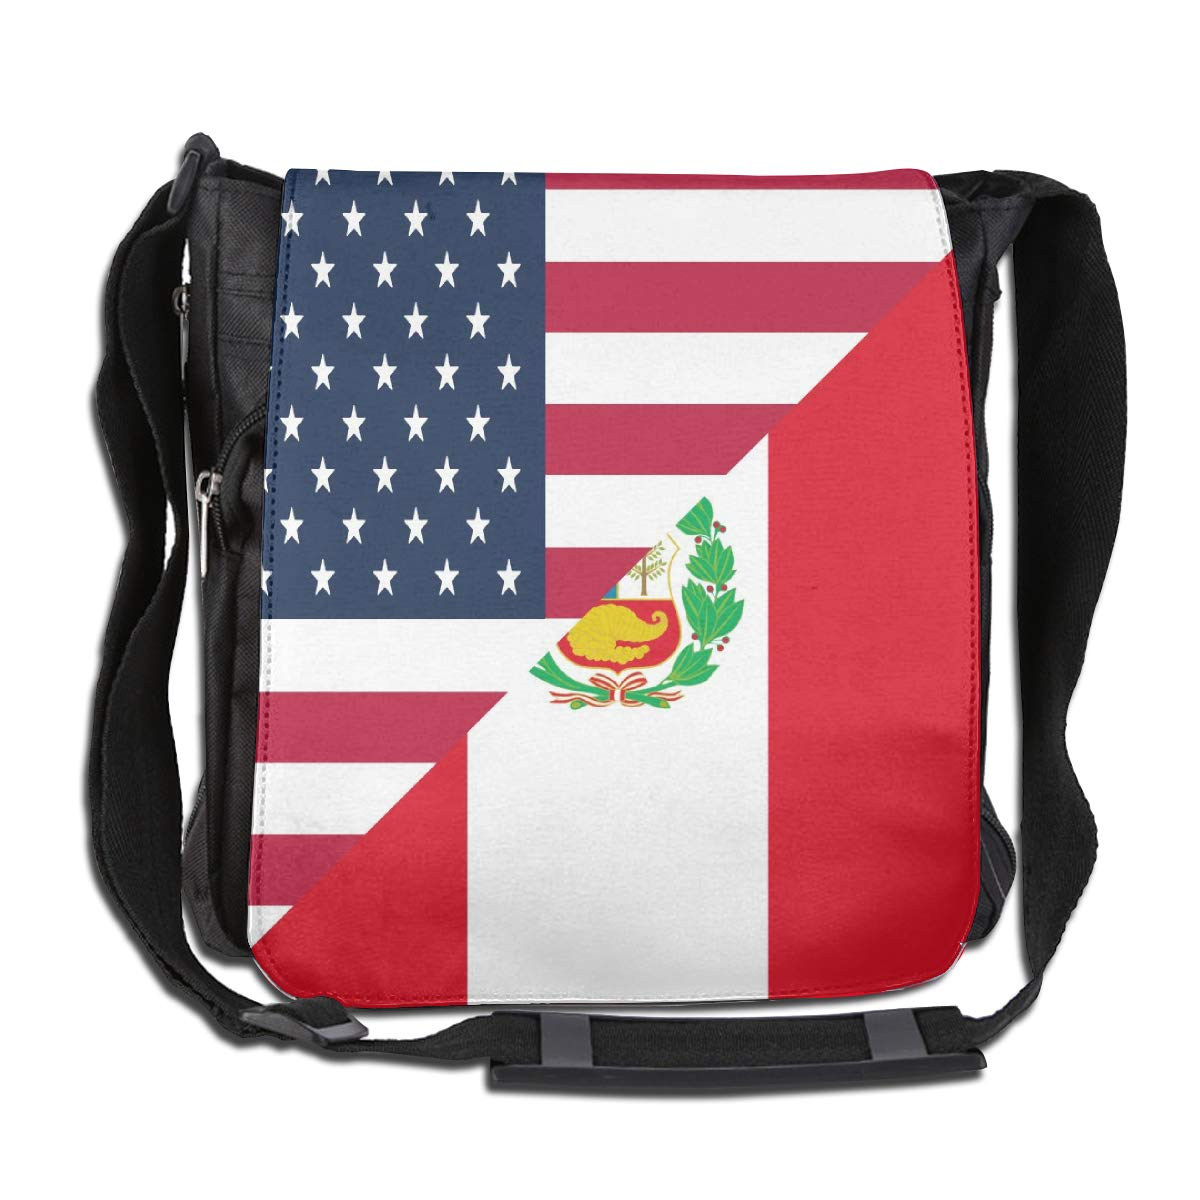 American And Peru Flag Crossbody Shoulder Bag Fashion Casual Daily Messenger Bag Satchel School Bag For Women And Men